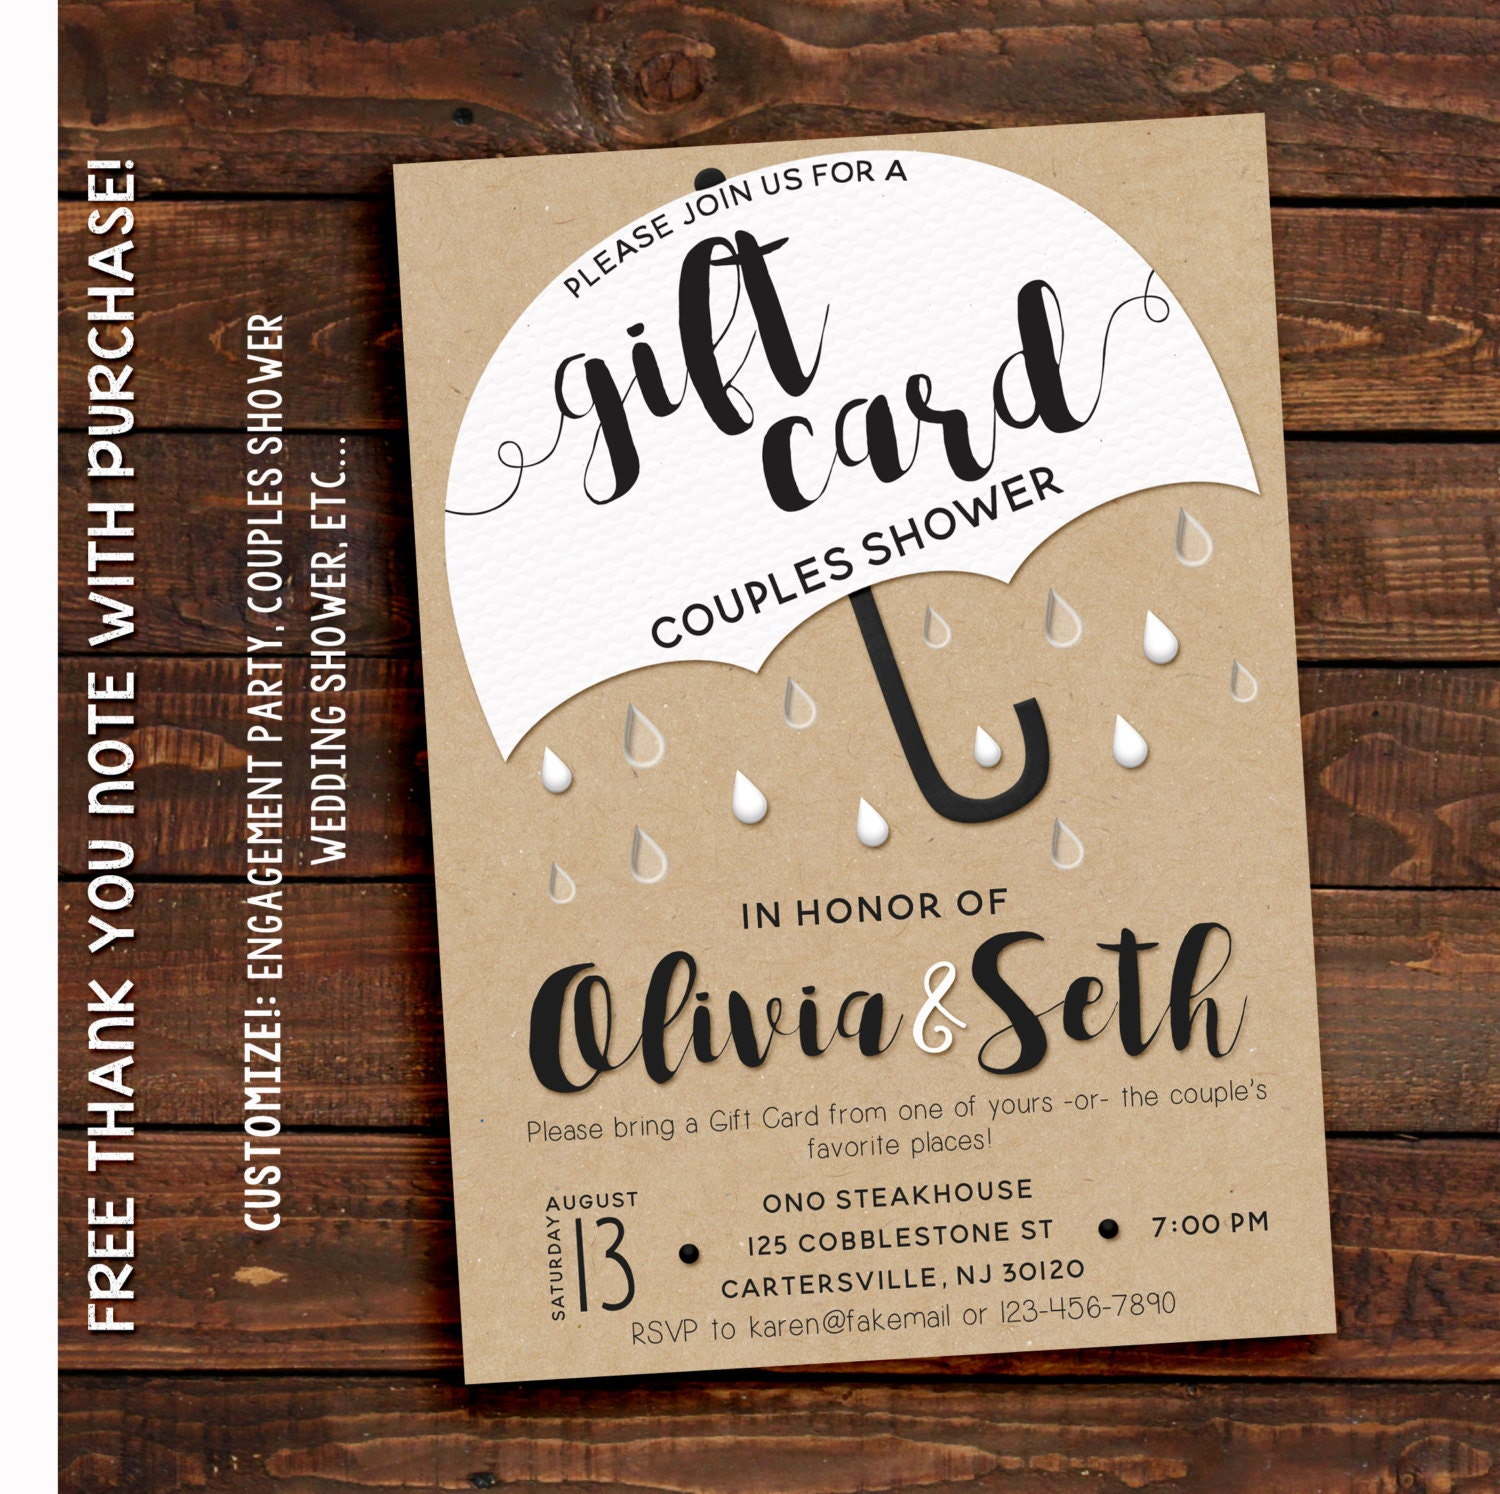 Wedding Gift Card Sayings: Couples Shower Invitation Couples Shower Invitation